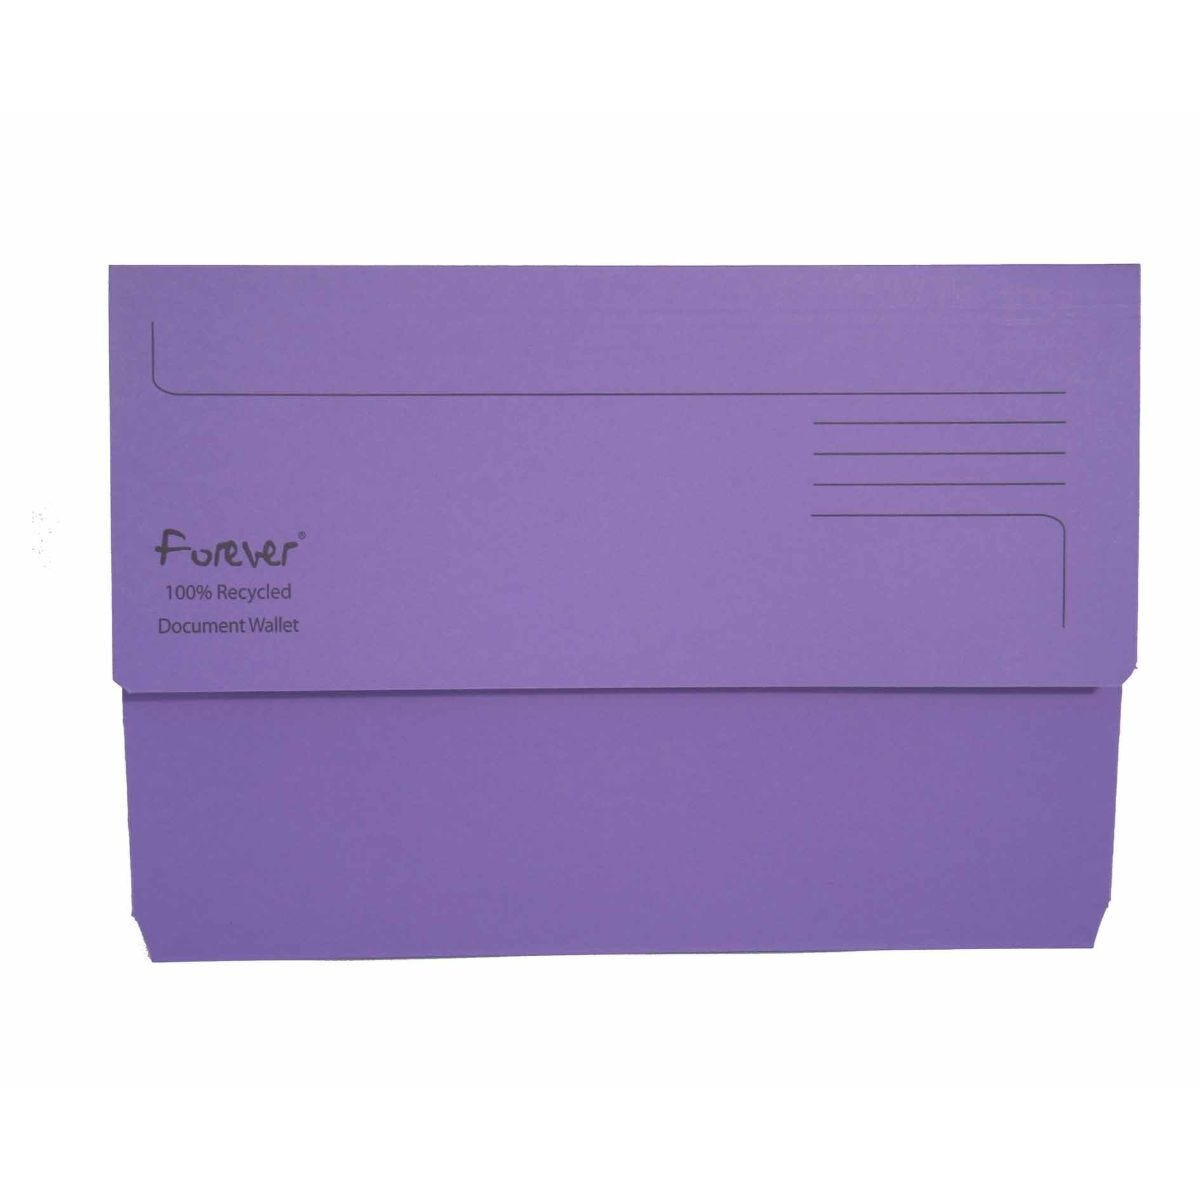 Exacompta Forever Document Wallet Foolscap Pack of 25 300gsm Purple